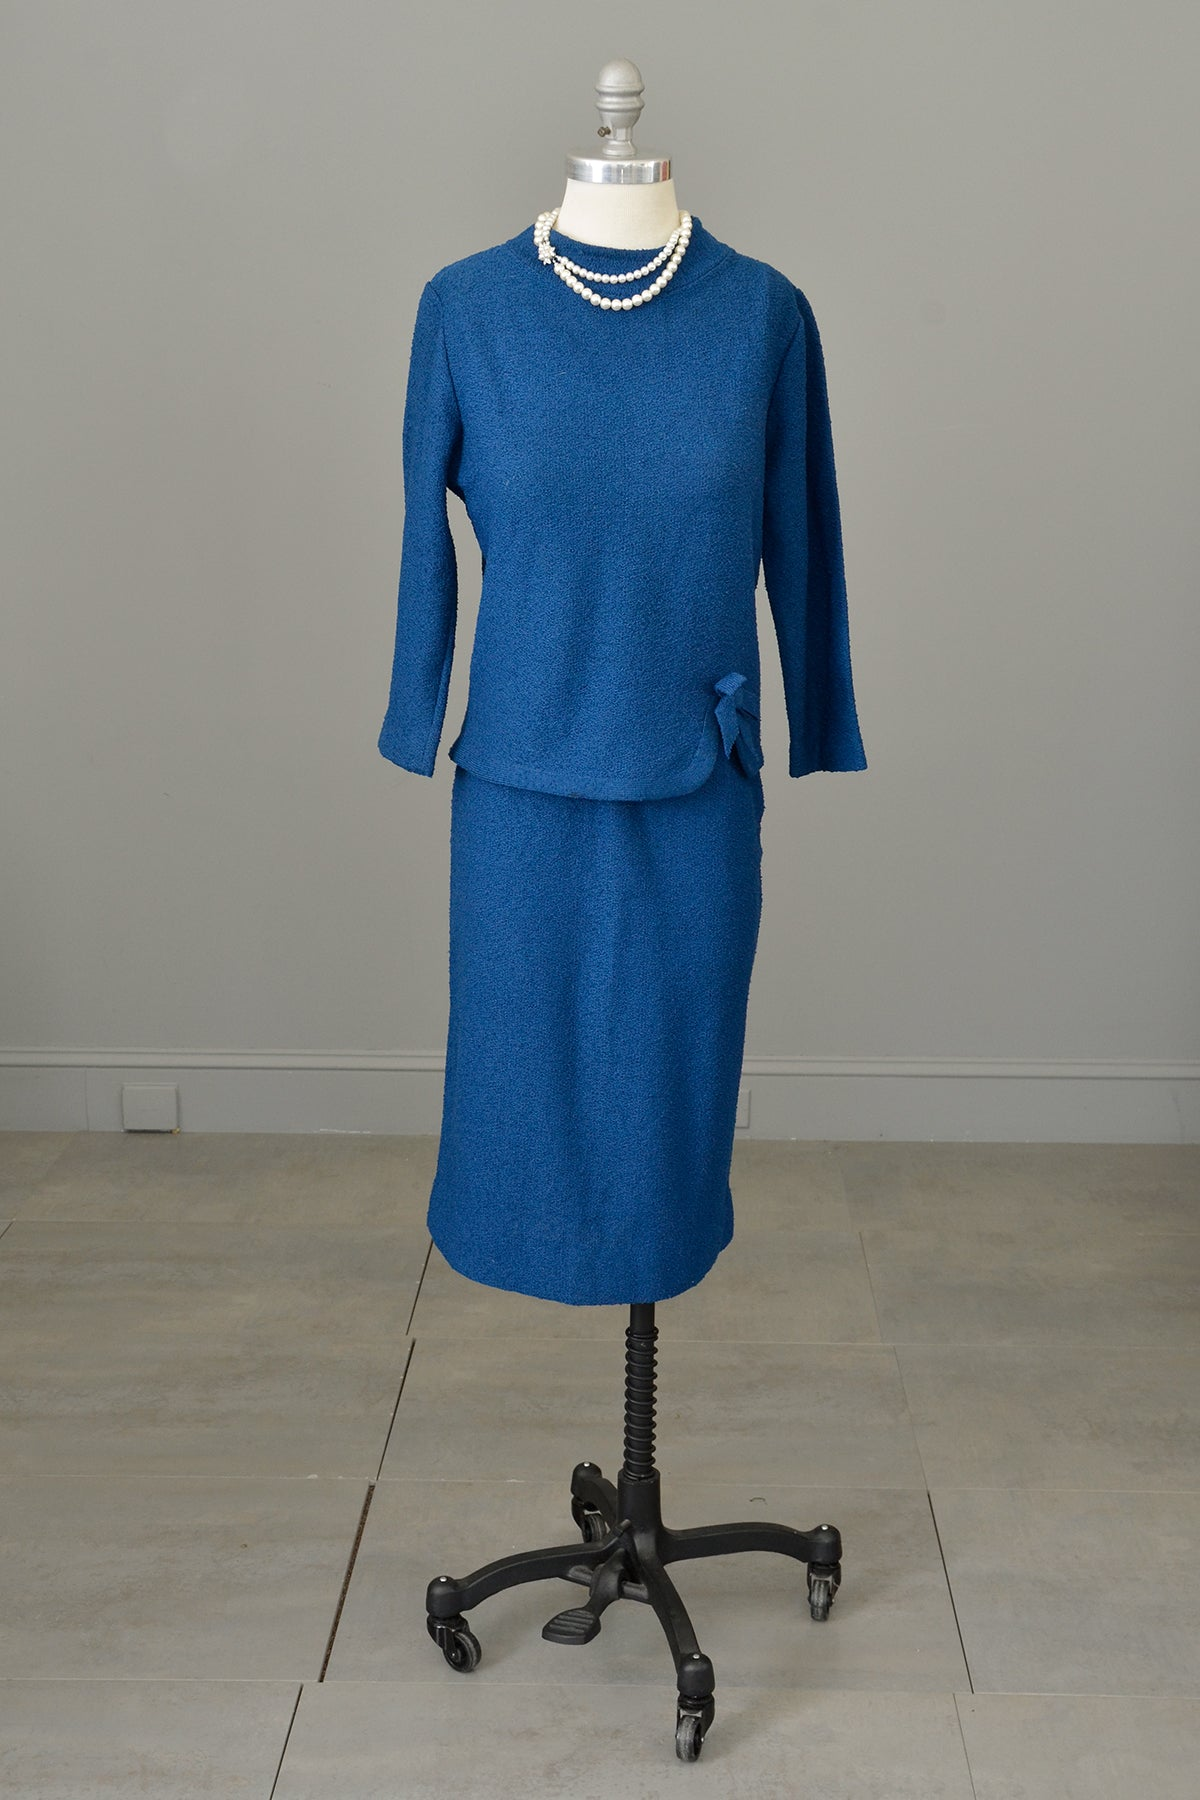 1950s Blue Textured Knit Top Sweater Skirt Set